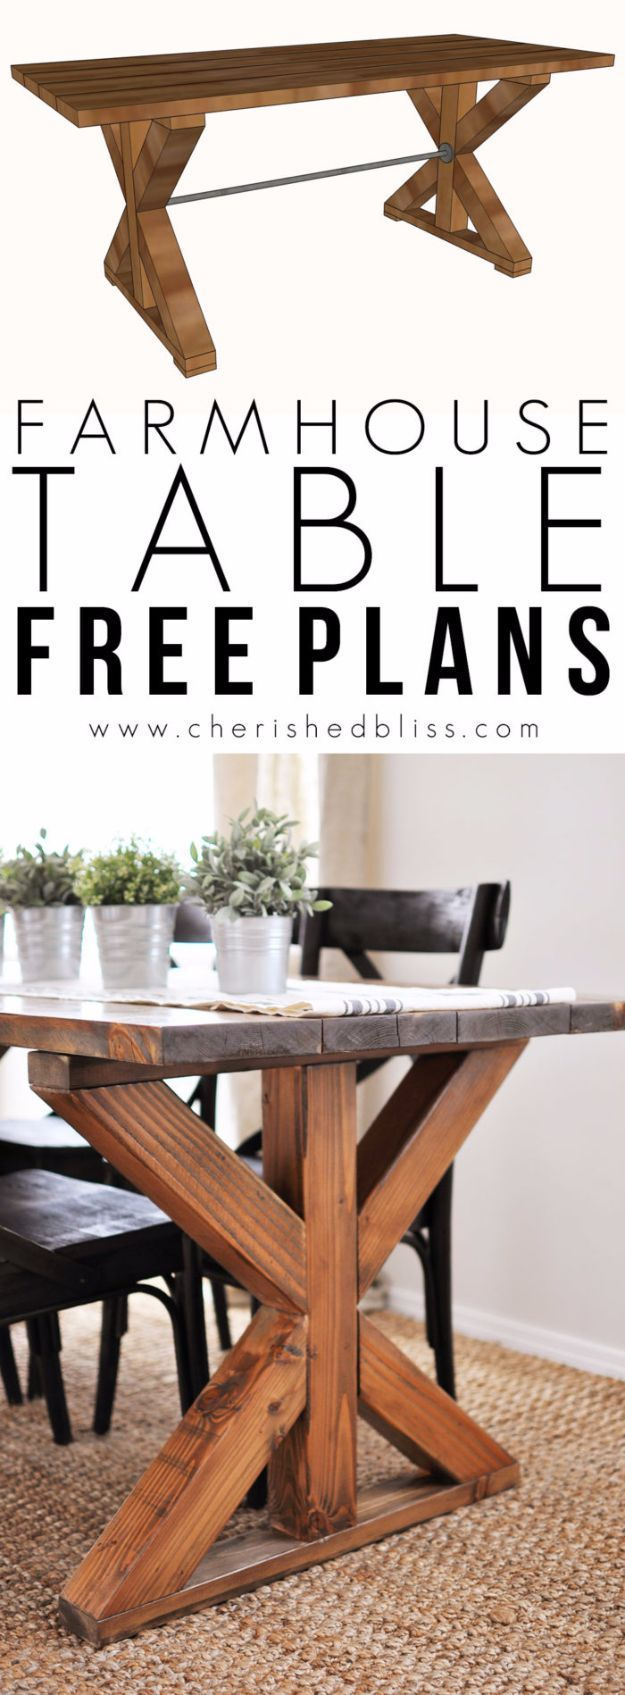 DIY Dining Room Table Projects – X Brace Farmhouse Table – Creative Do It Yo…